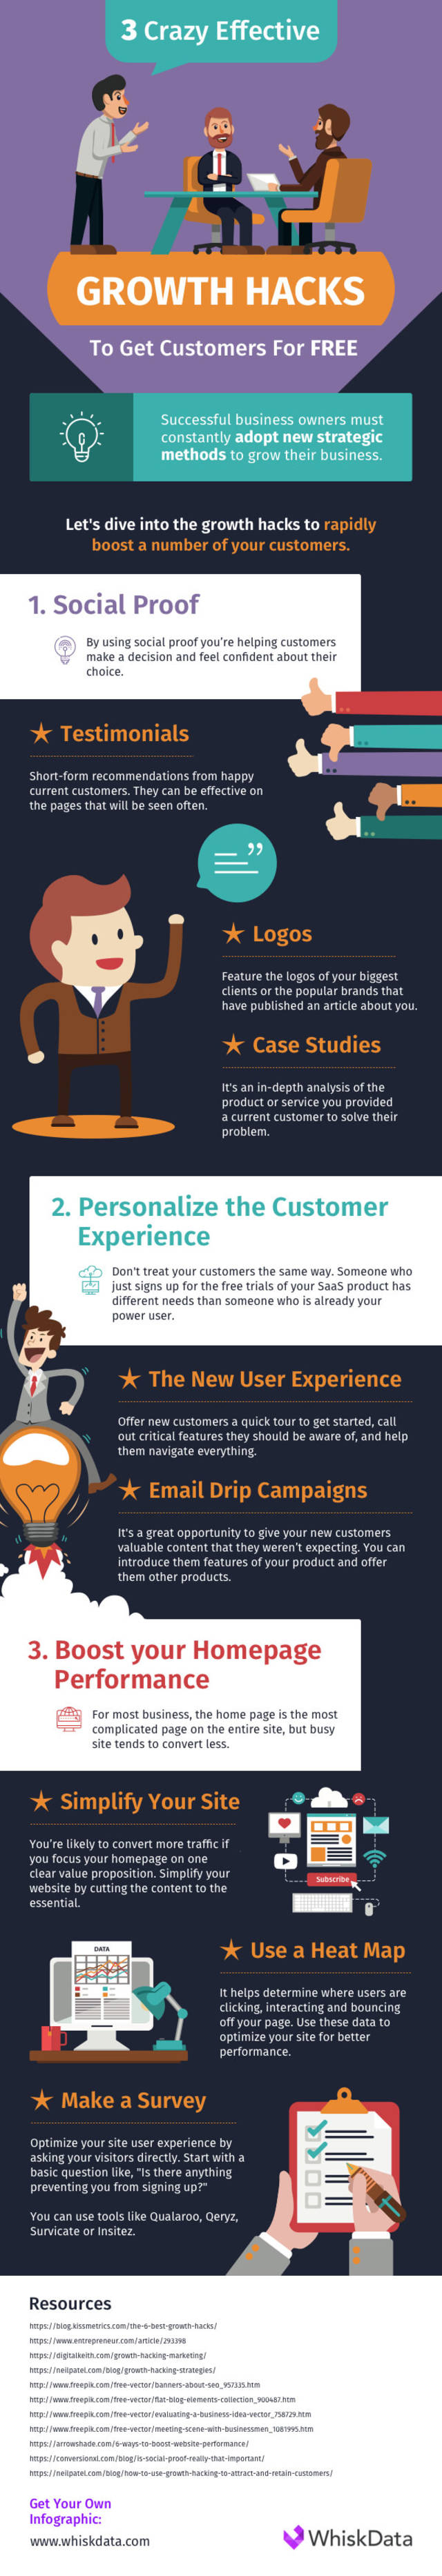 3 crazy effective growth hacks to get customers for free